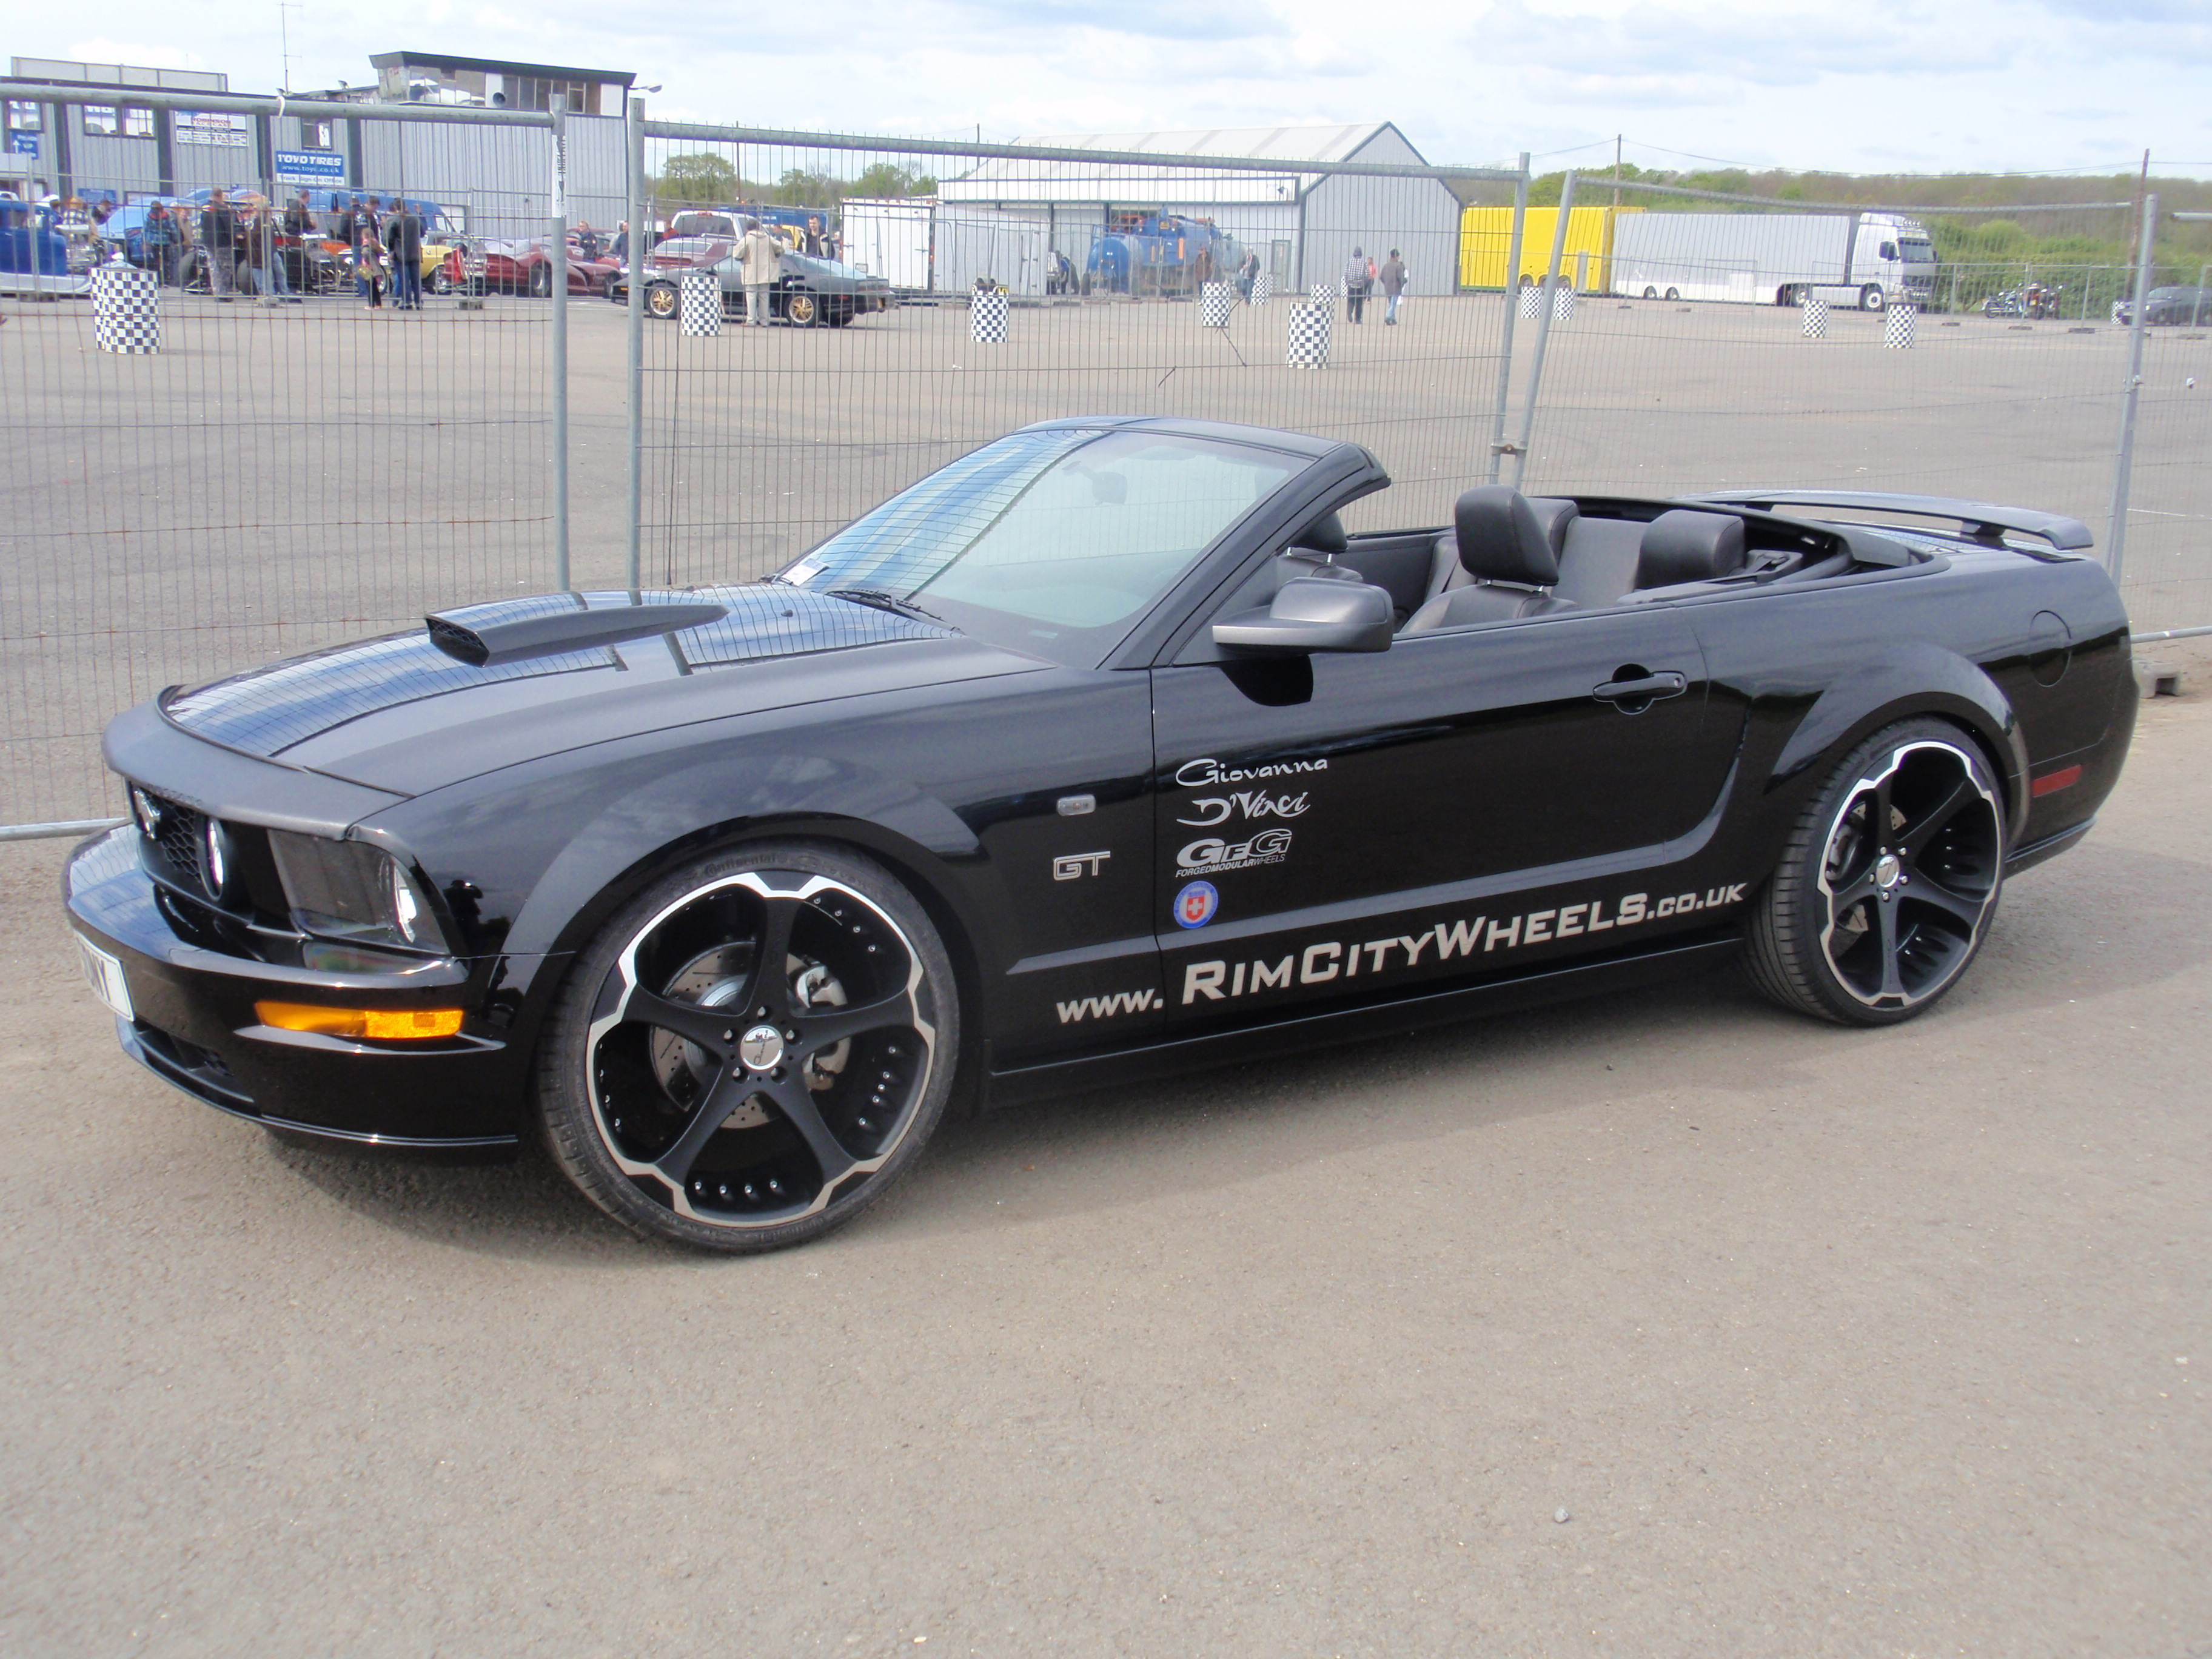 Rimcityuk 2007 ford mustang specs photos modification - Mustang modification ...